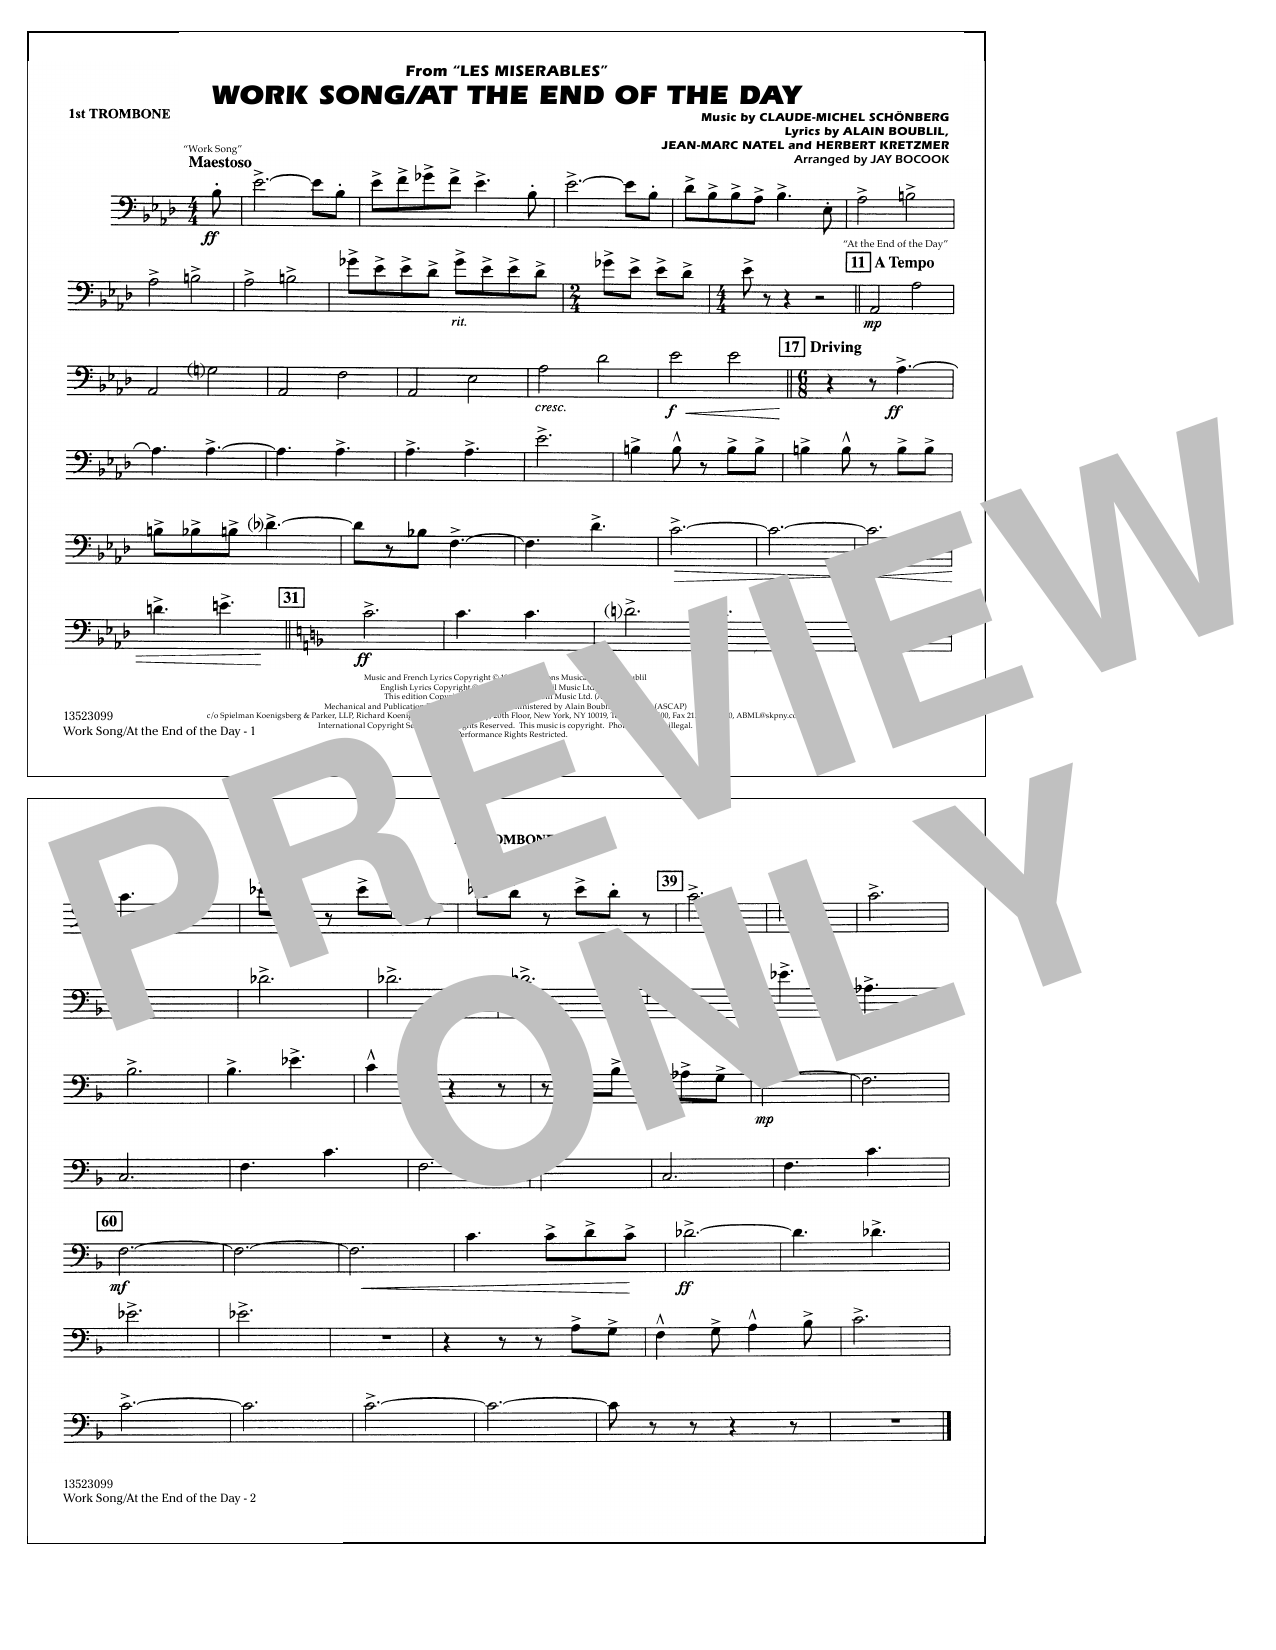 Work Song/At the End of the Day (Les Misérables) (arr. Jay Bocook) - 1st Trombone (Marching Band)